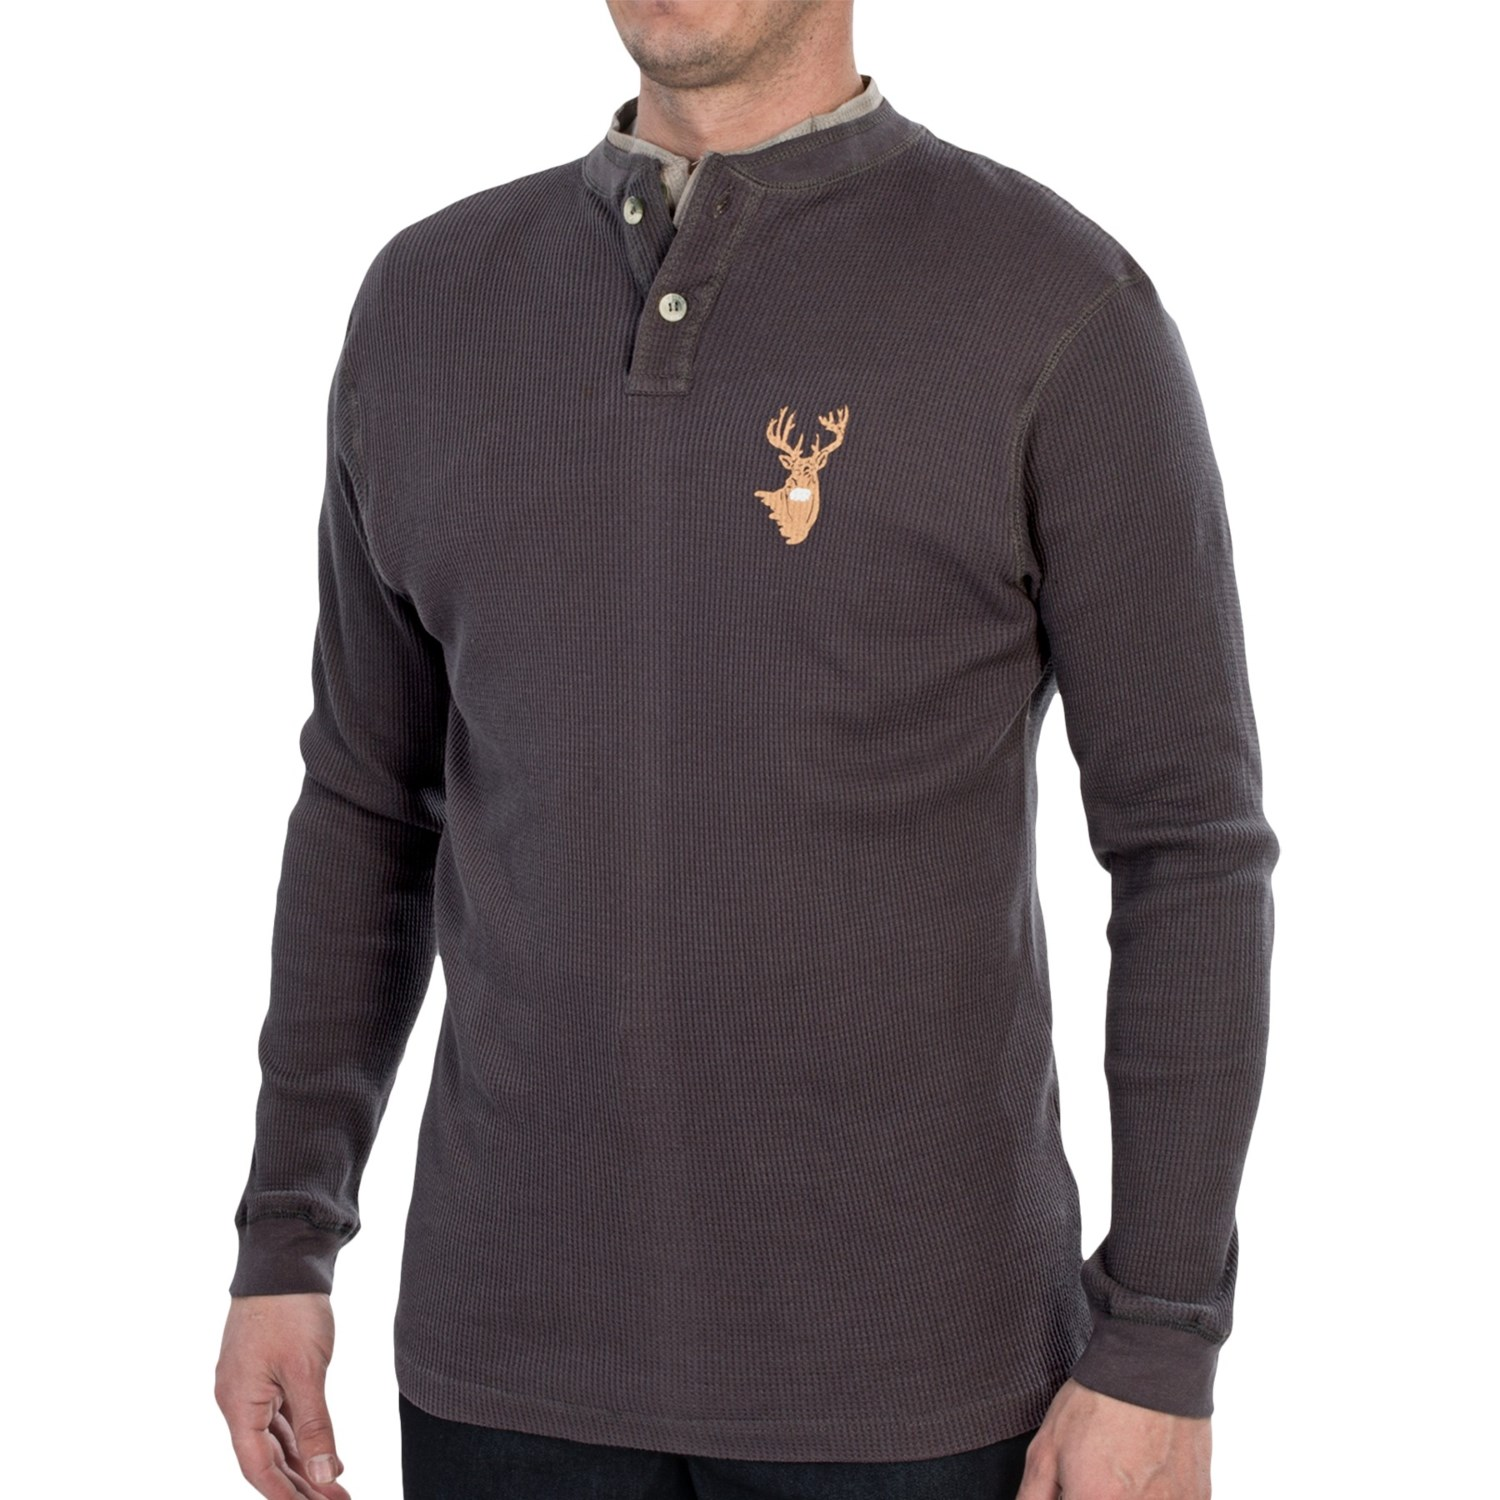 Dual neck thermal henley shirt long sleeve for men for Men s thermal henley long sleeve shirts